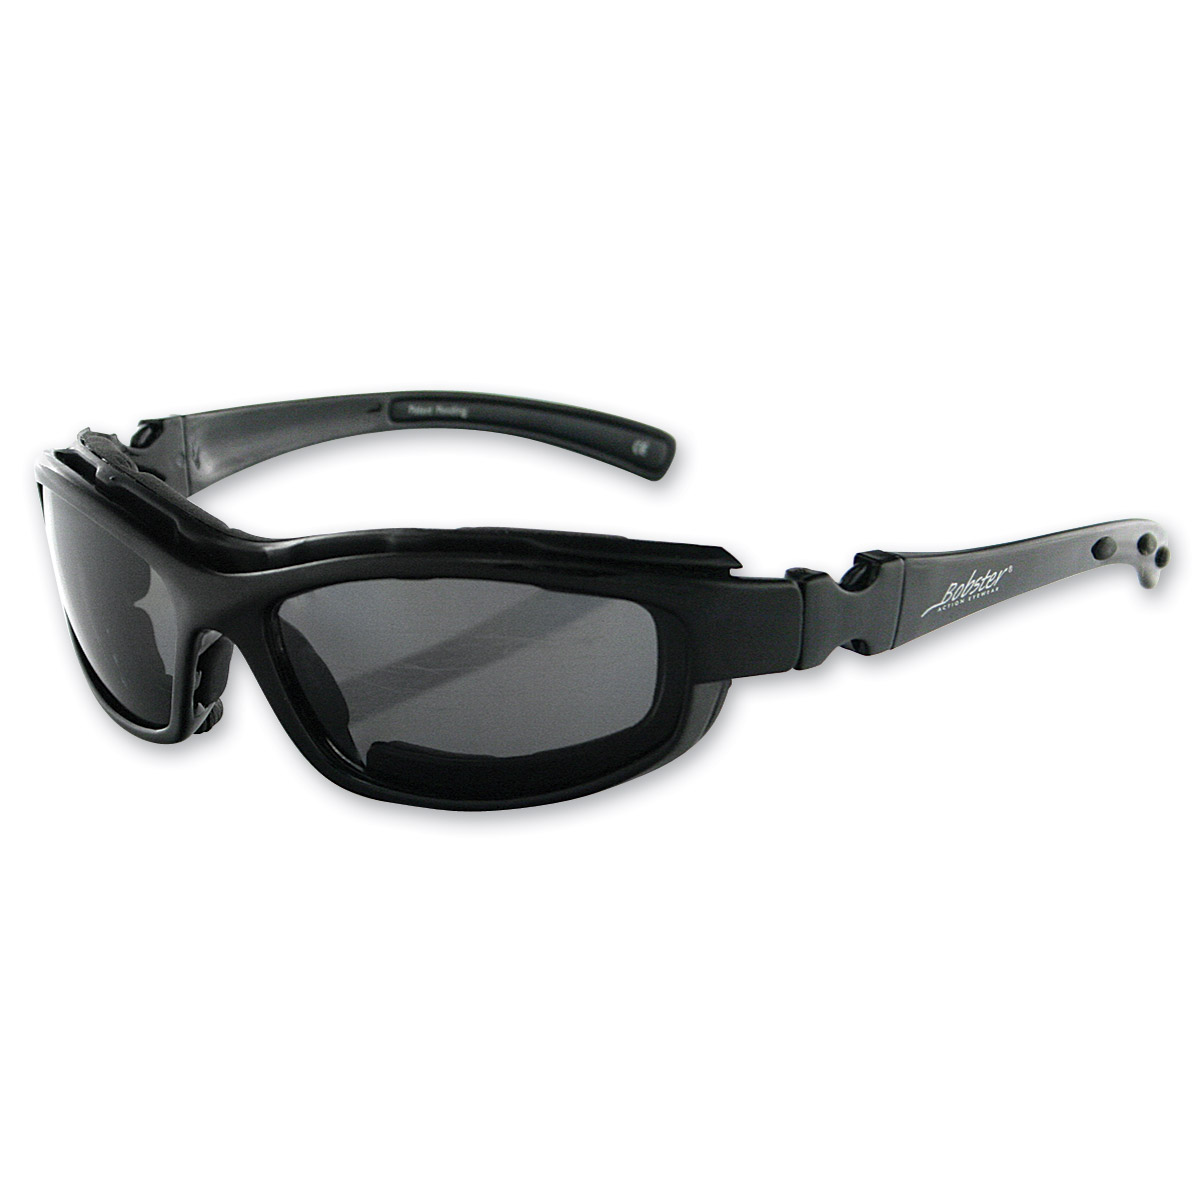 Bobster Road Hog II Convertible Sungoggles